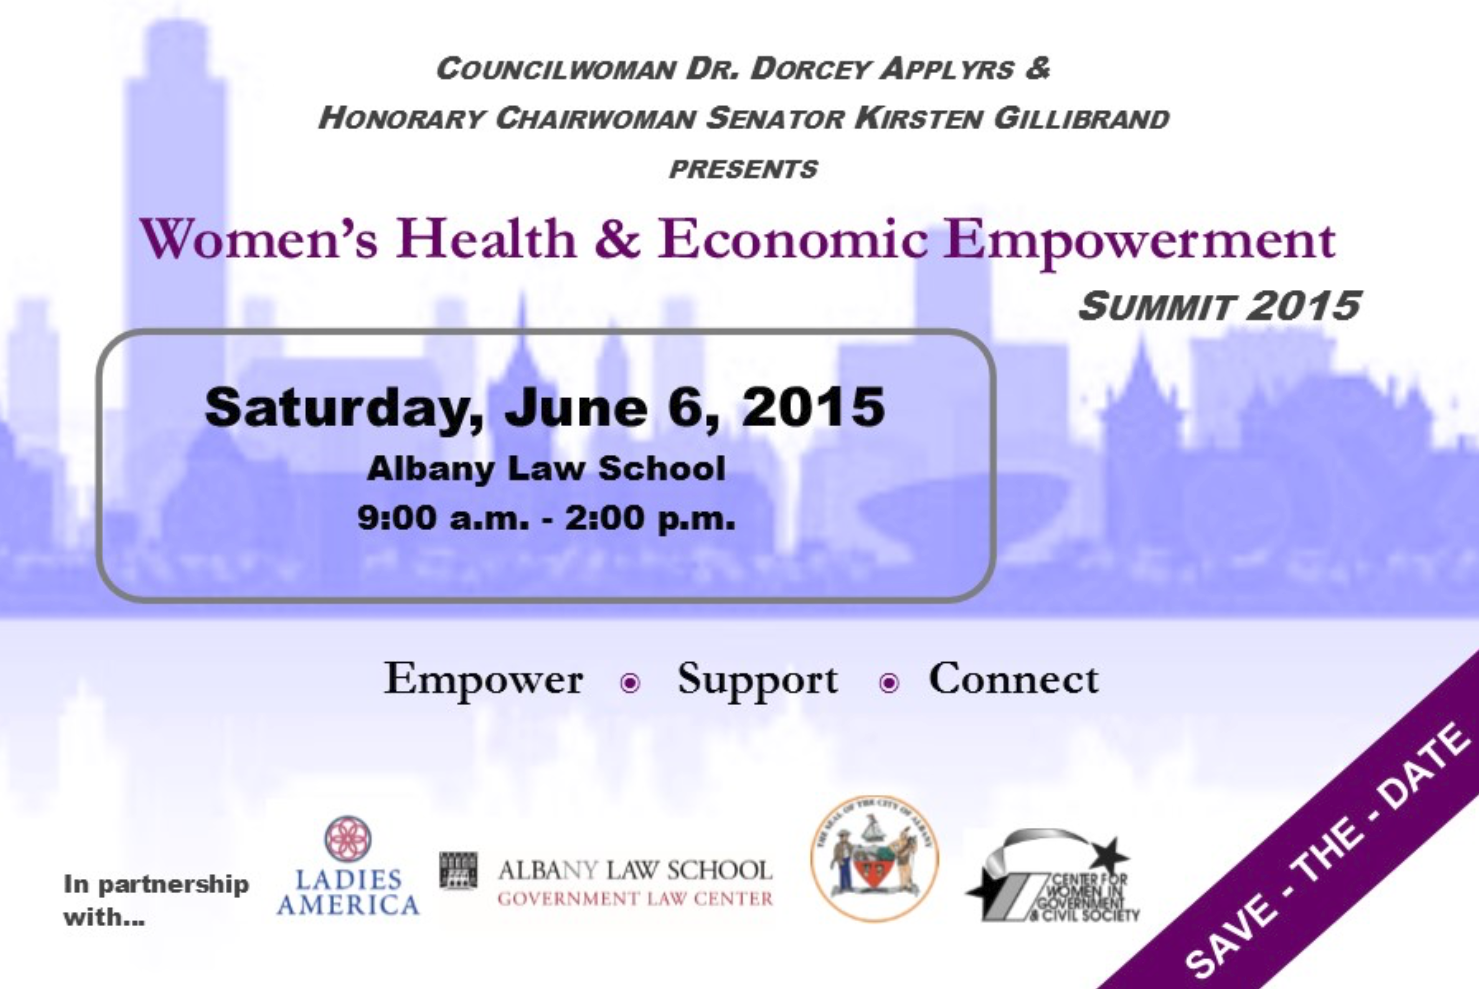 WHEE 2015 Summit Save The Date